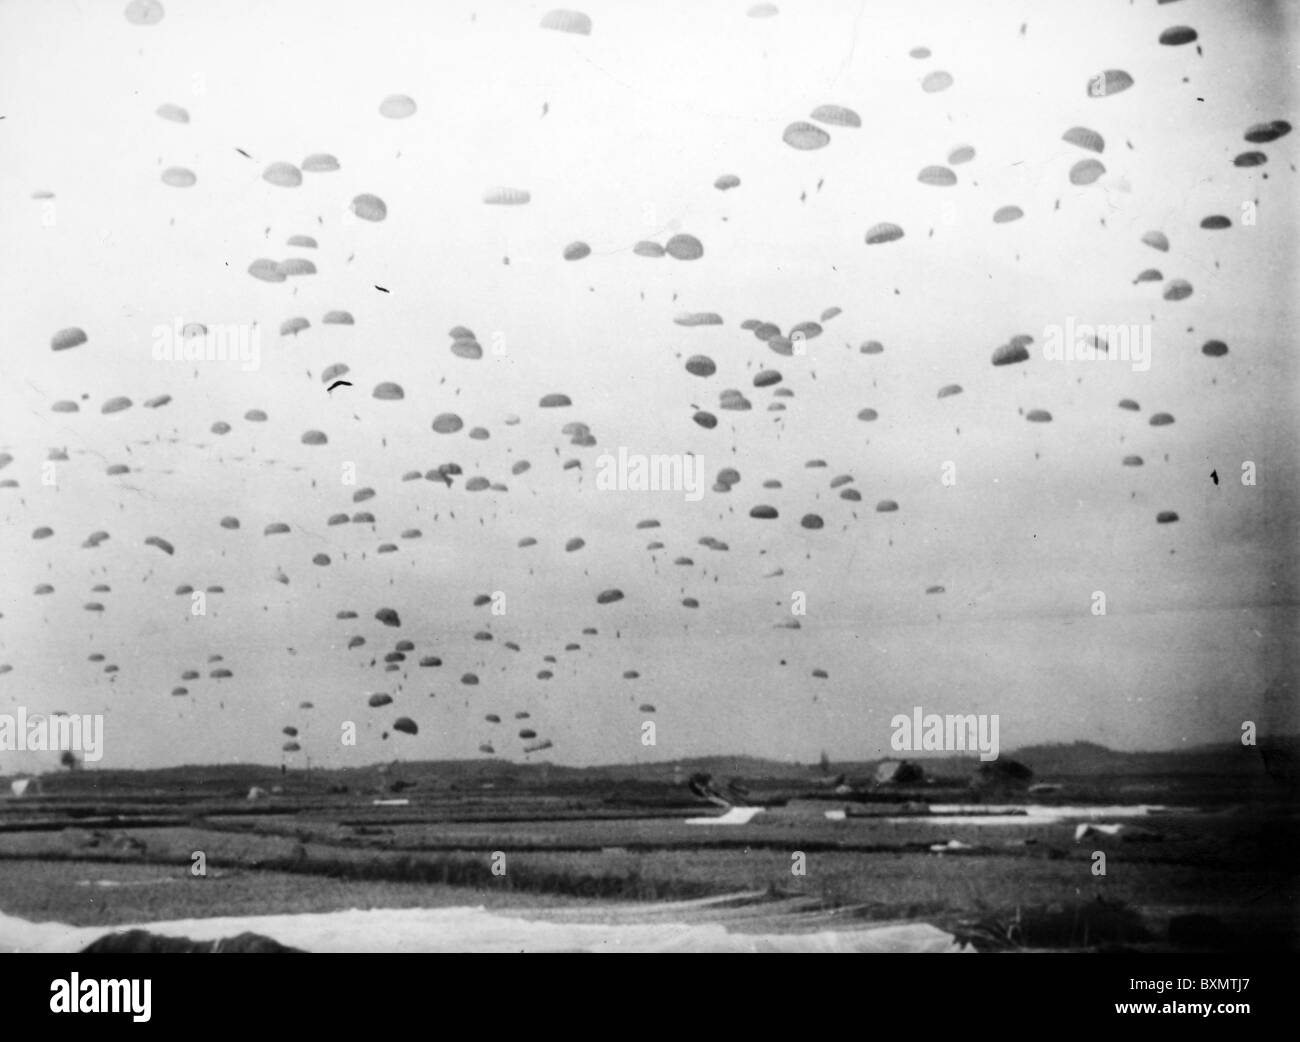 'Angels' equipment of the 157th Regimental Combat Team 11th Airborne Divsion, U.S. Army successfully land - Stock Image